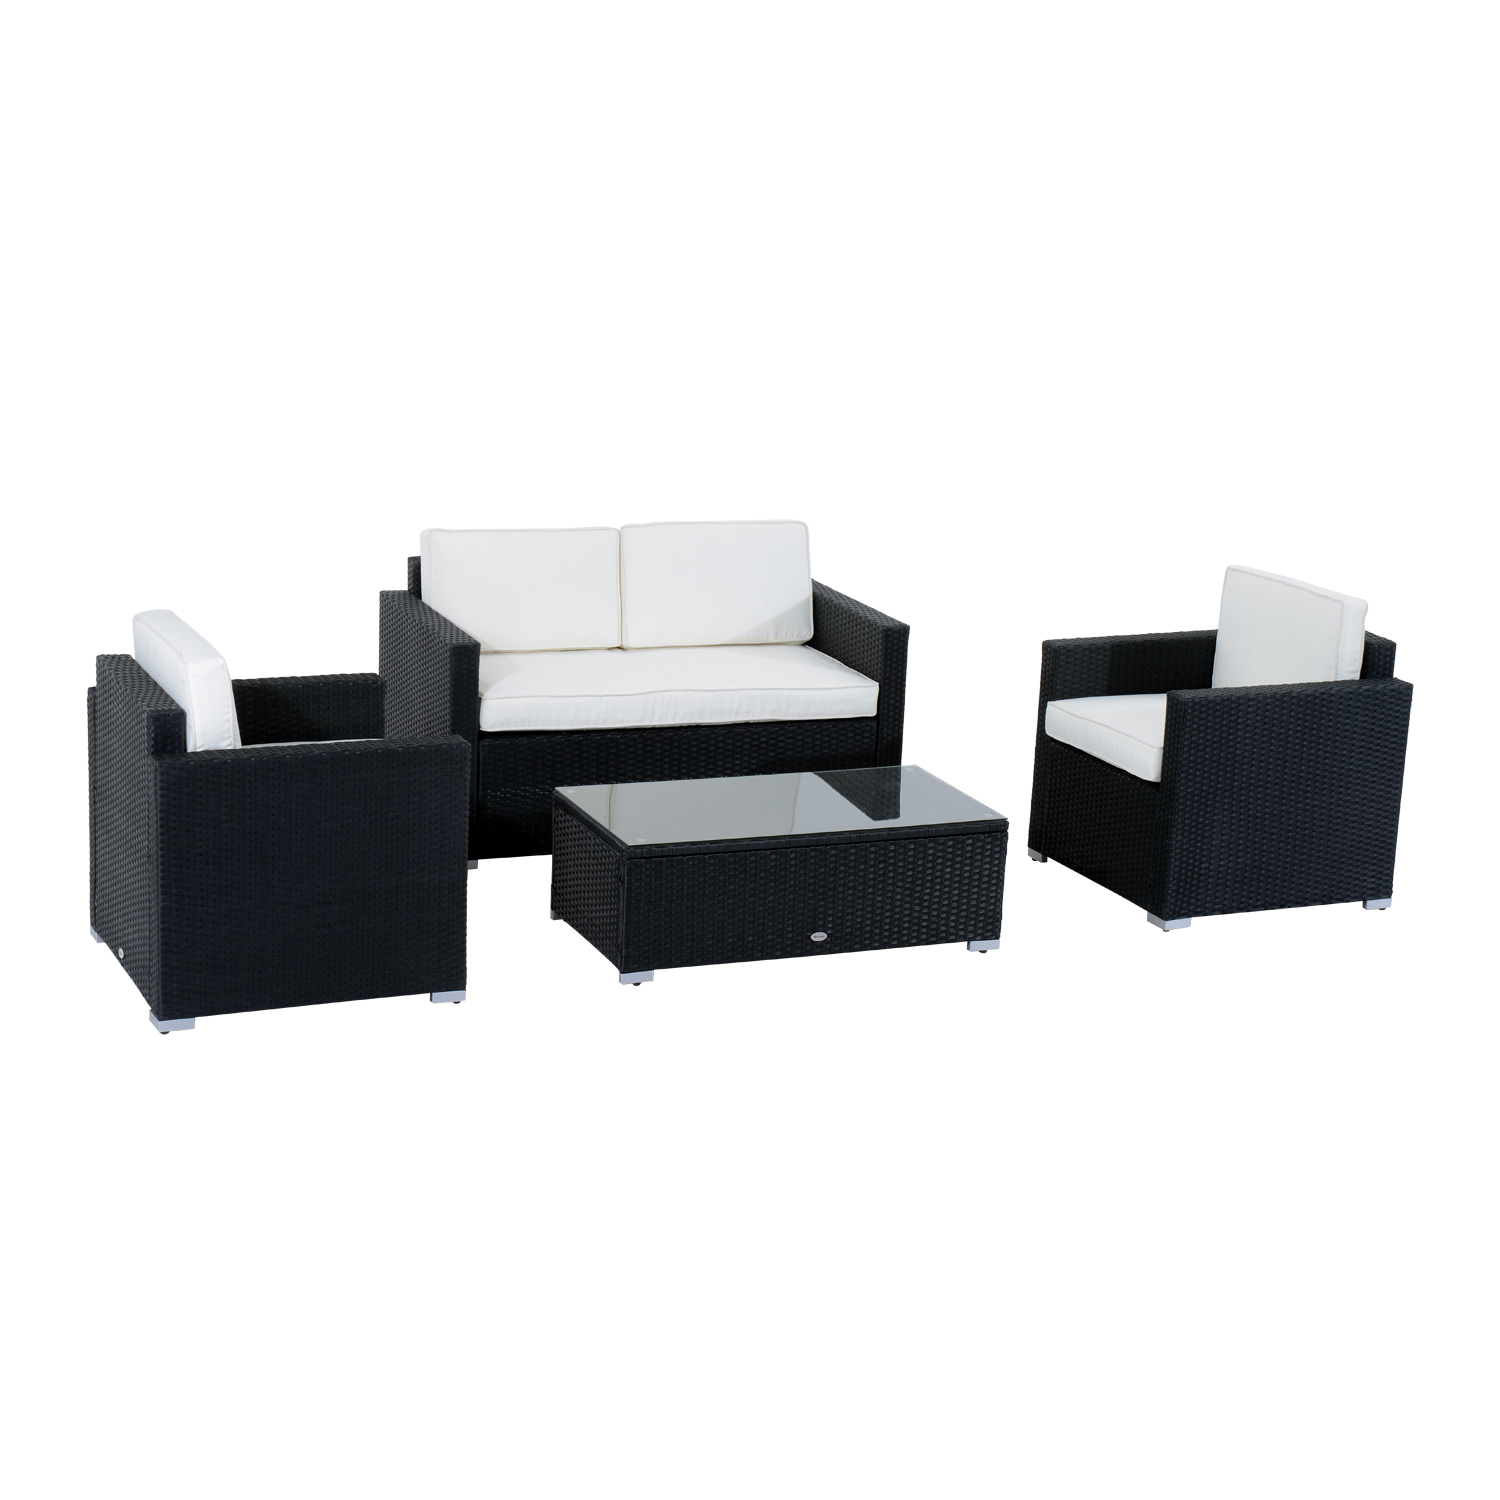 Outsunny Modern 4 Piece Cushioned Outdoor Rattan Wicker Sofa